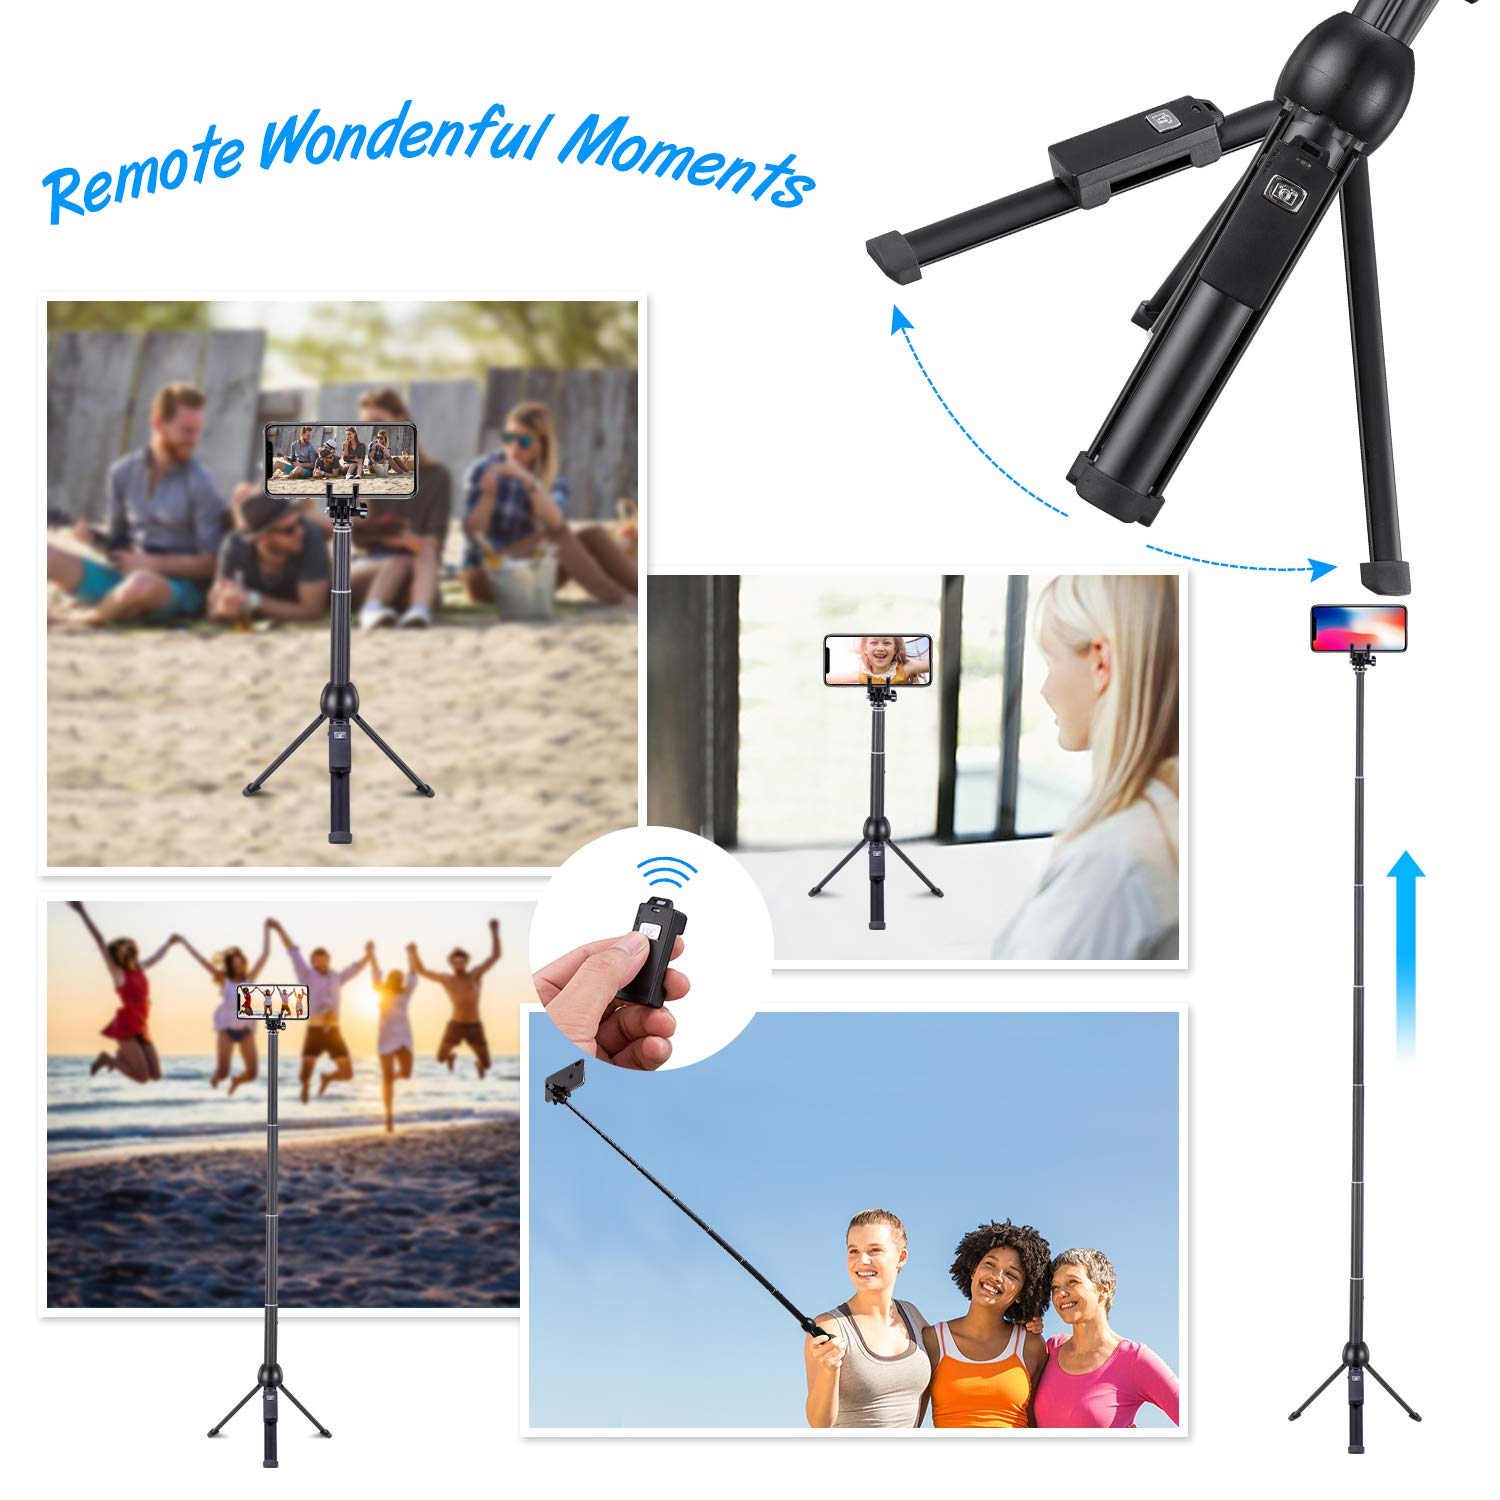 Eocean 45-Inch Selfie Stick Tripod, Extendable Selfie Stick with Wireless Remote Compatible with iPhone Xs/Xr/Xs Max/X/8 Plus/8/ iPhone XR/iPhone XS/iPhone XS Max/7 Plus/Galaxy Note 9/S9/S9 Plus/GoPro by Eocean (Image #7)